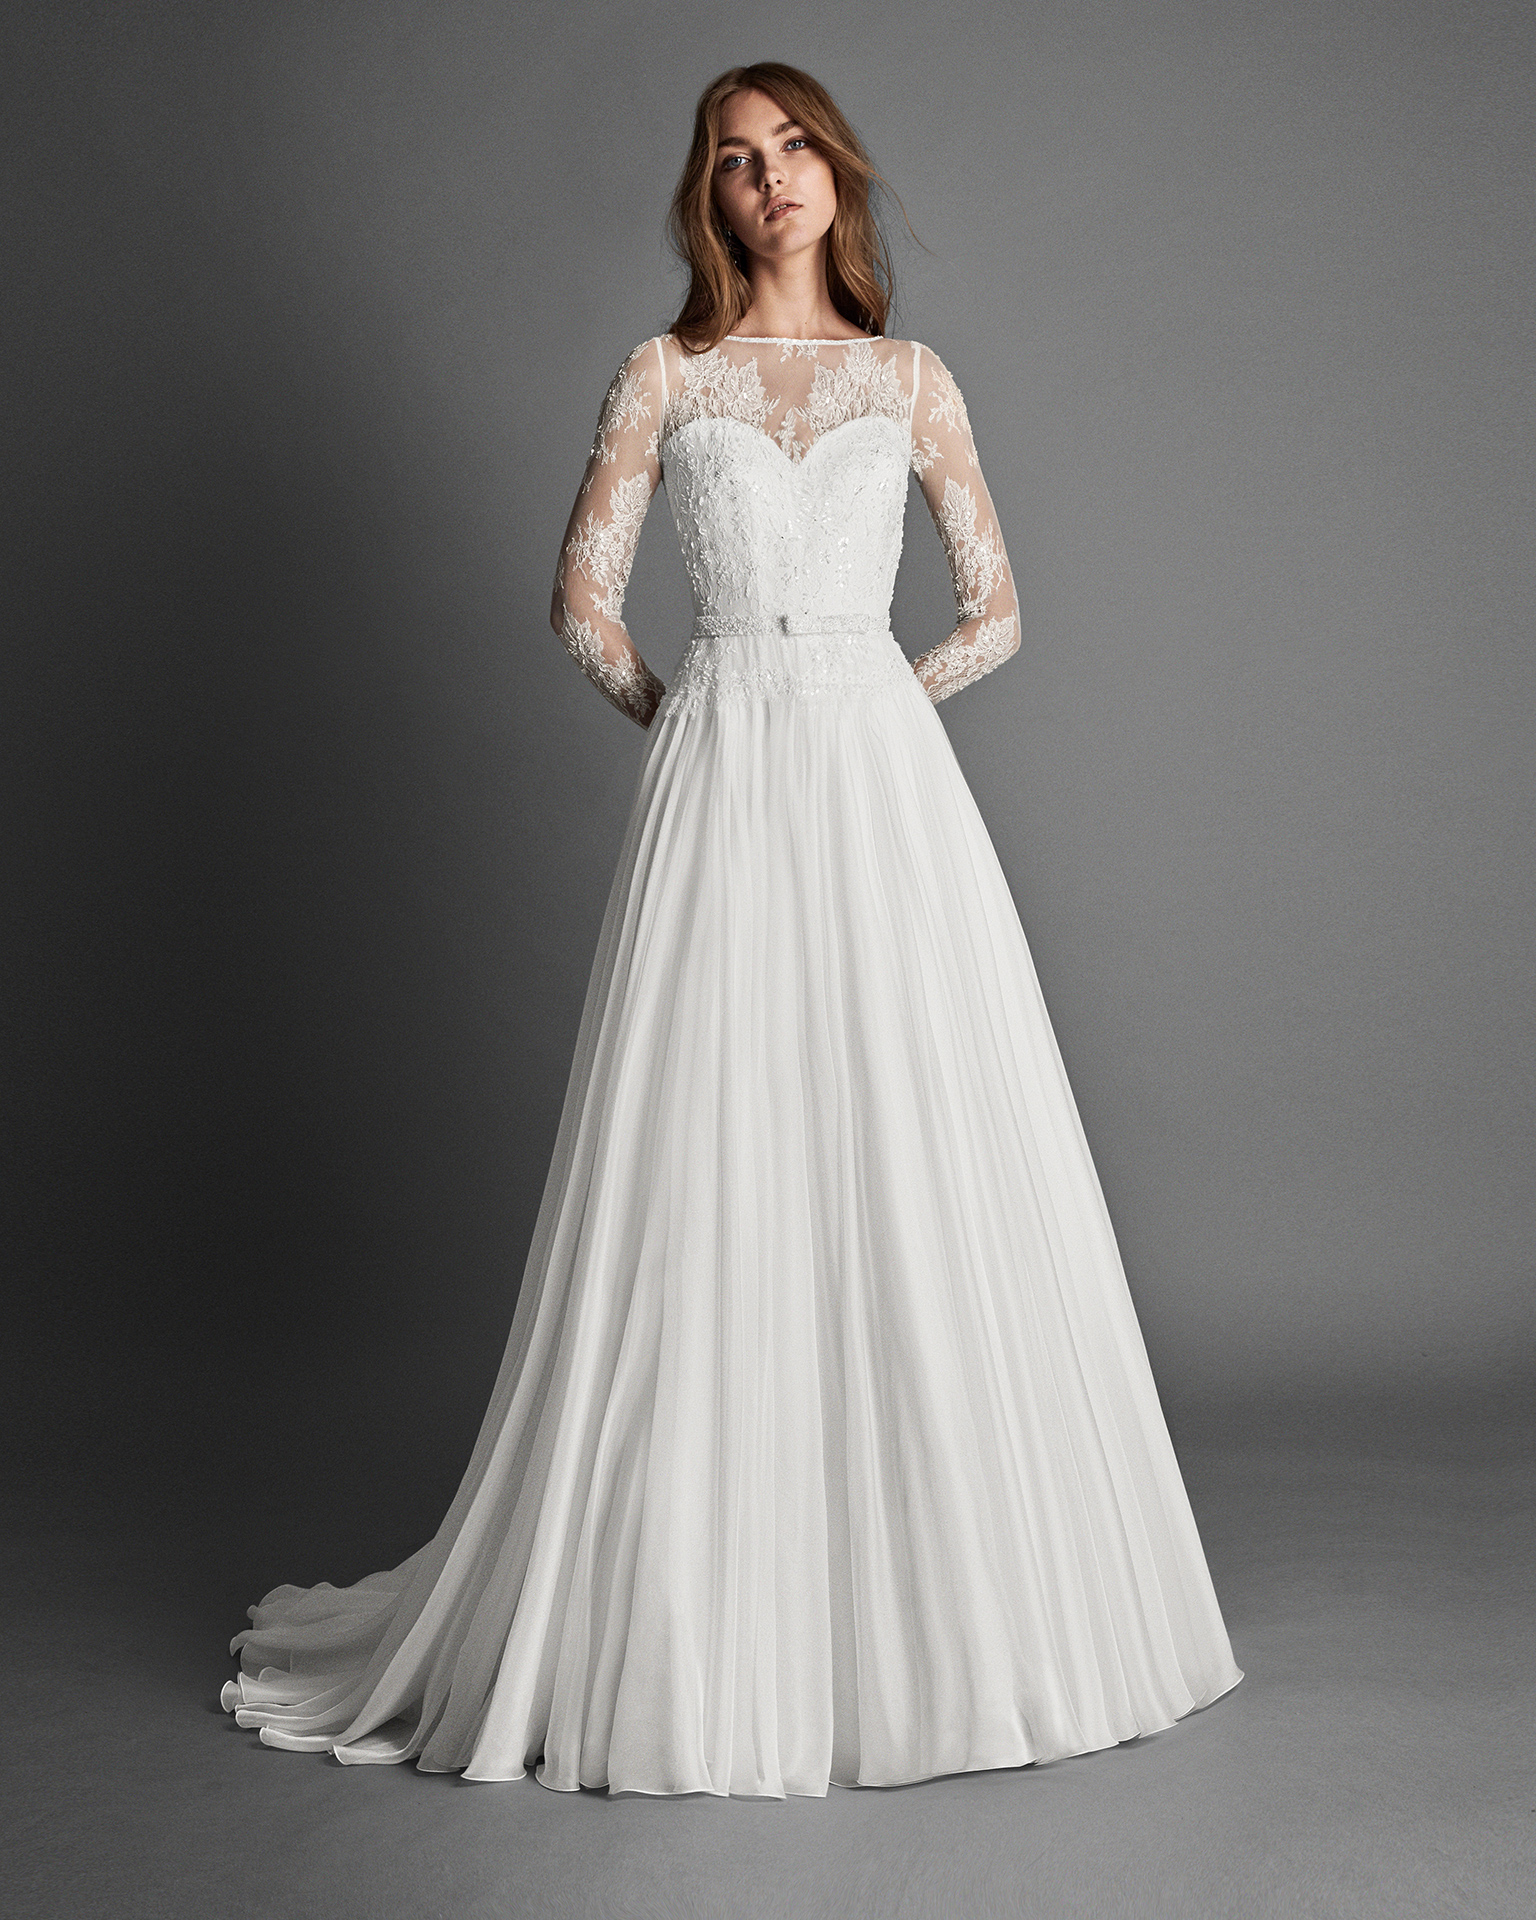 A-line voile and lace wedding dress with long sleeves, and low back with beadwork detail.